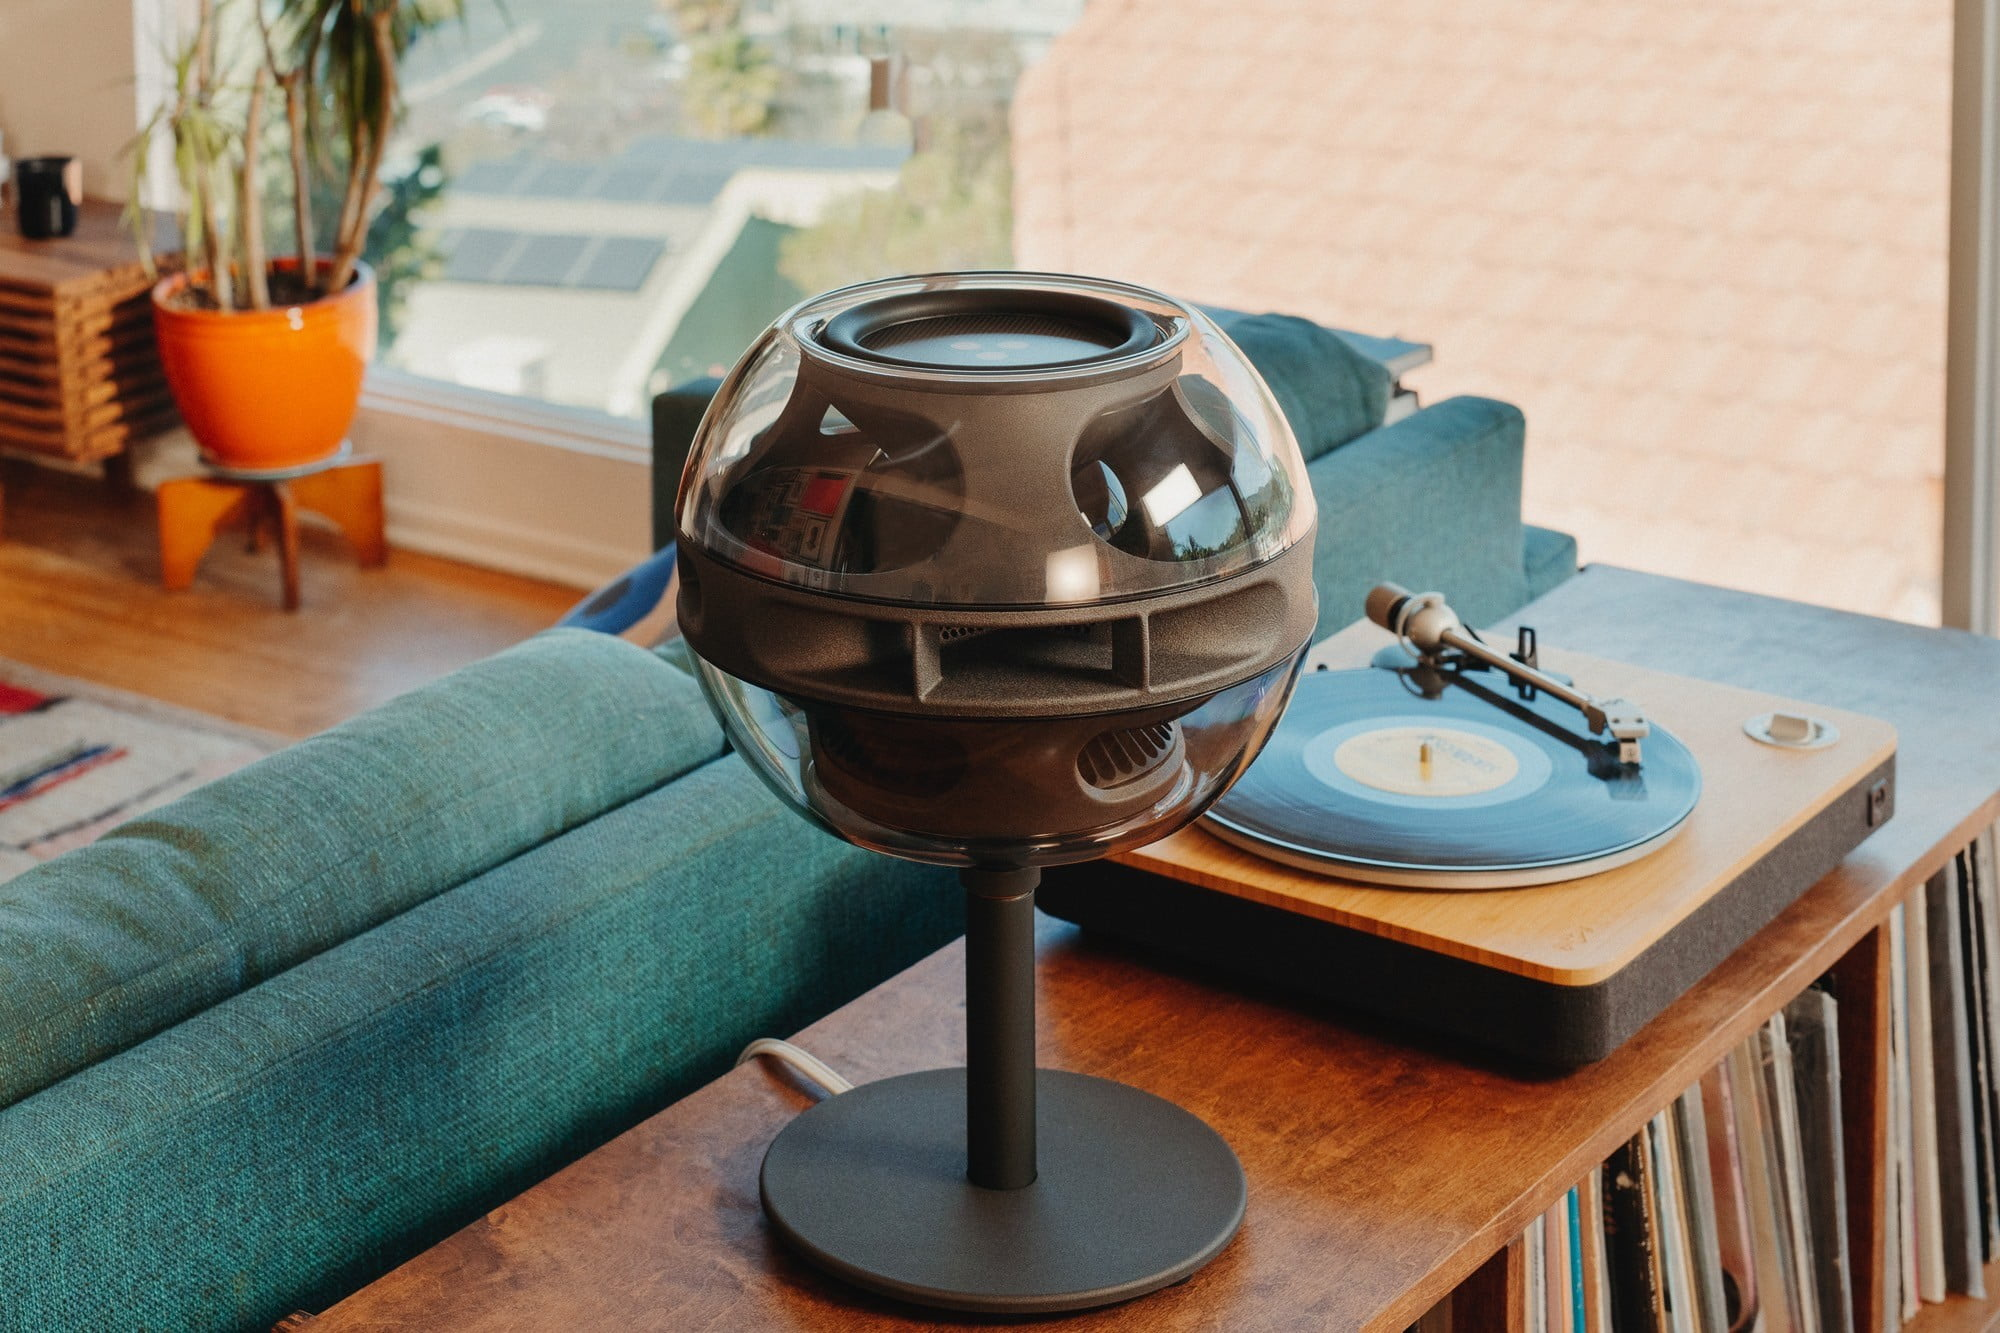 Syng Cell Alpha Triphonic speaker